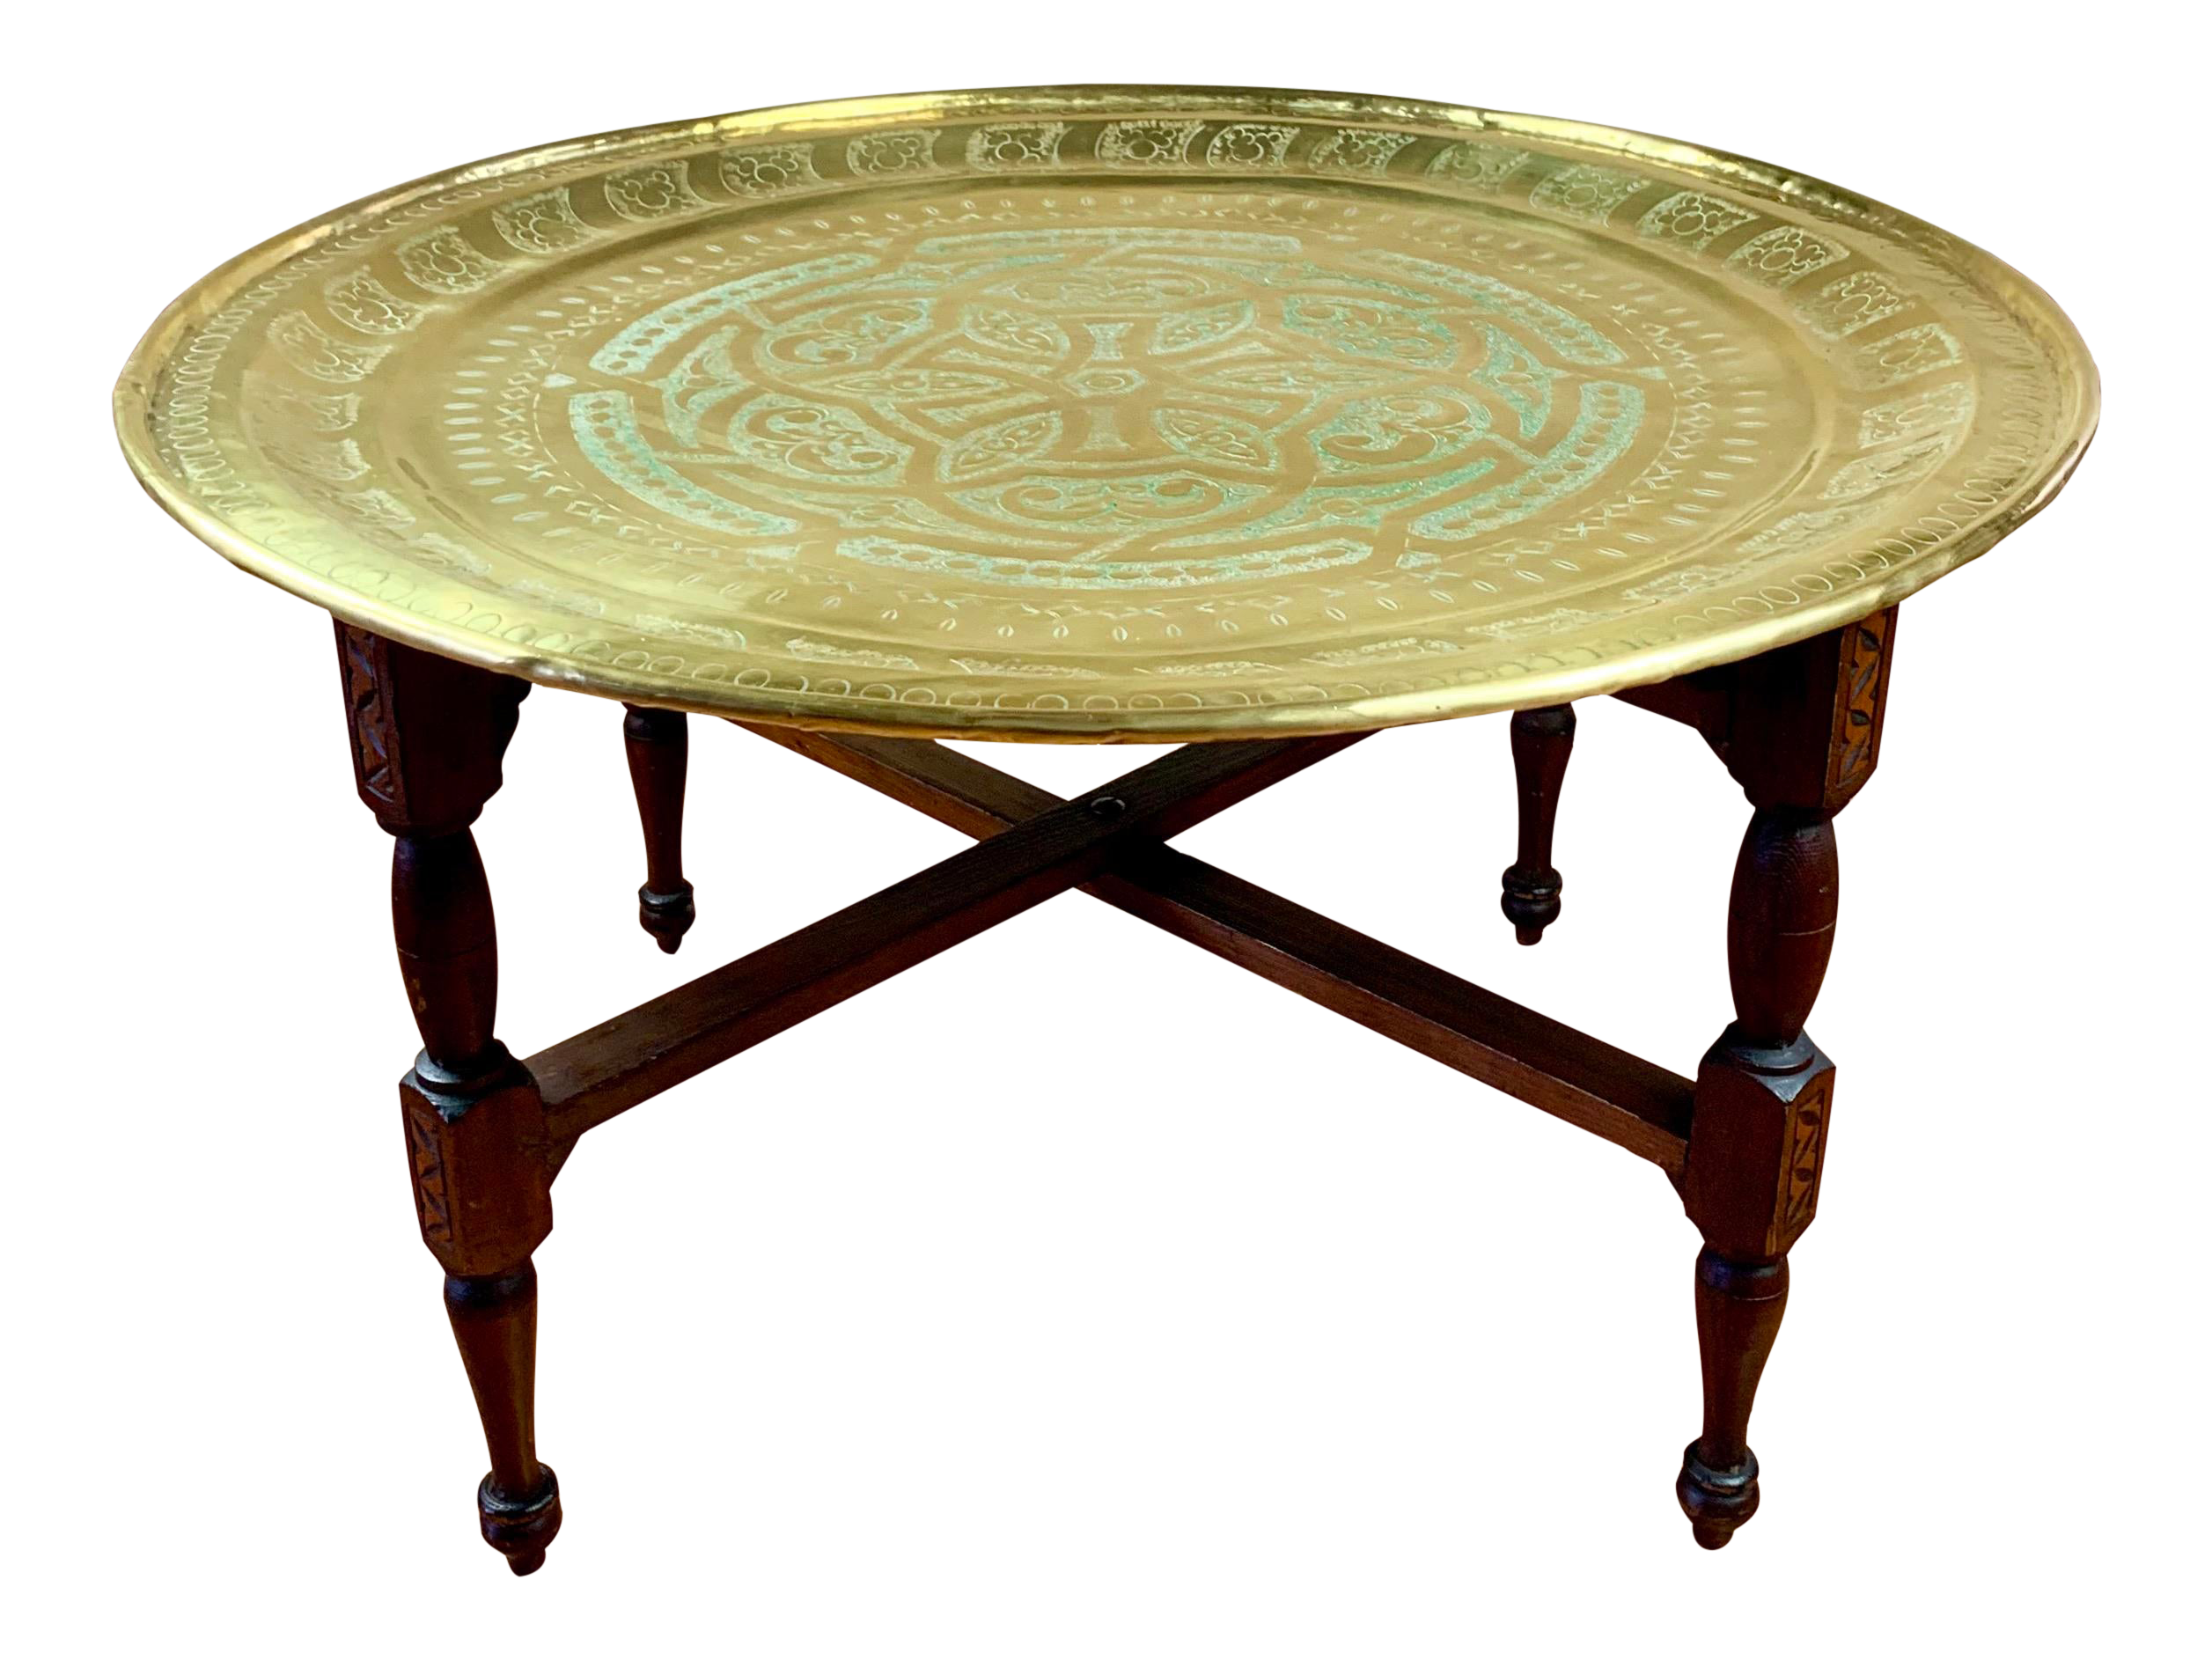 Anglo Indian Round Brass Tray Coffee Table On Folding Wooden Base Chairish